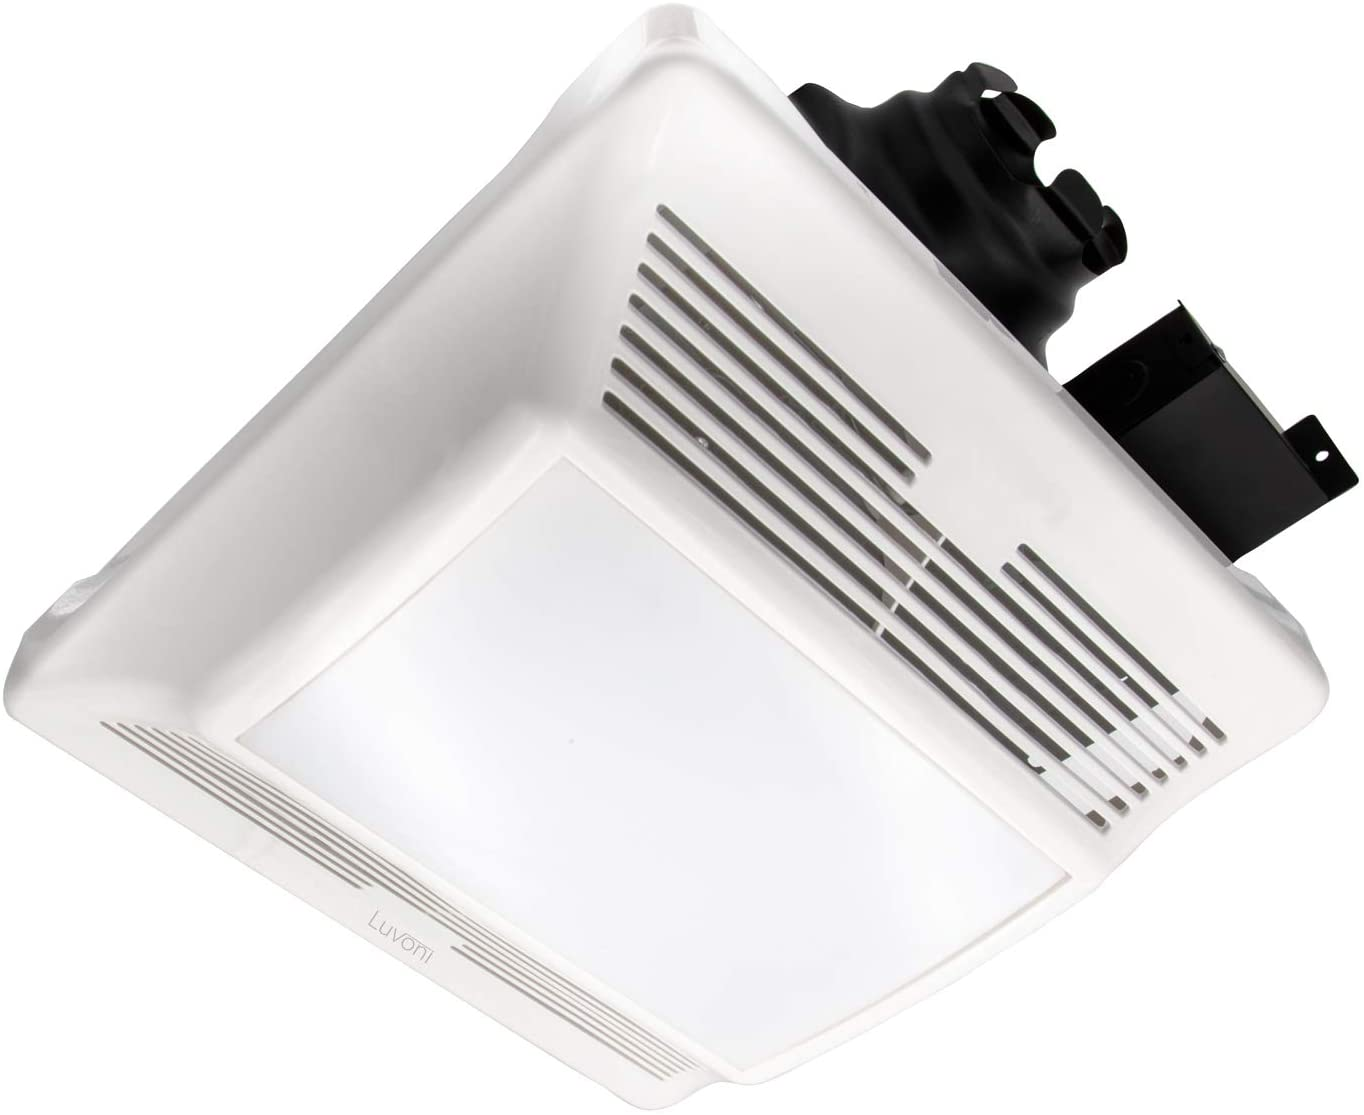 Luvoni 90 CFM Bathroom Exhaust and Ventilation Fan with Light, 1 Sones Quiet Operation, Ceiling Fan with Built in LED Light, White Grill, by Maxxima